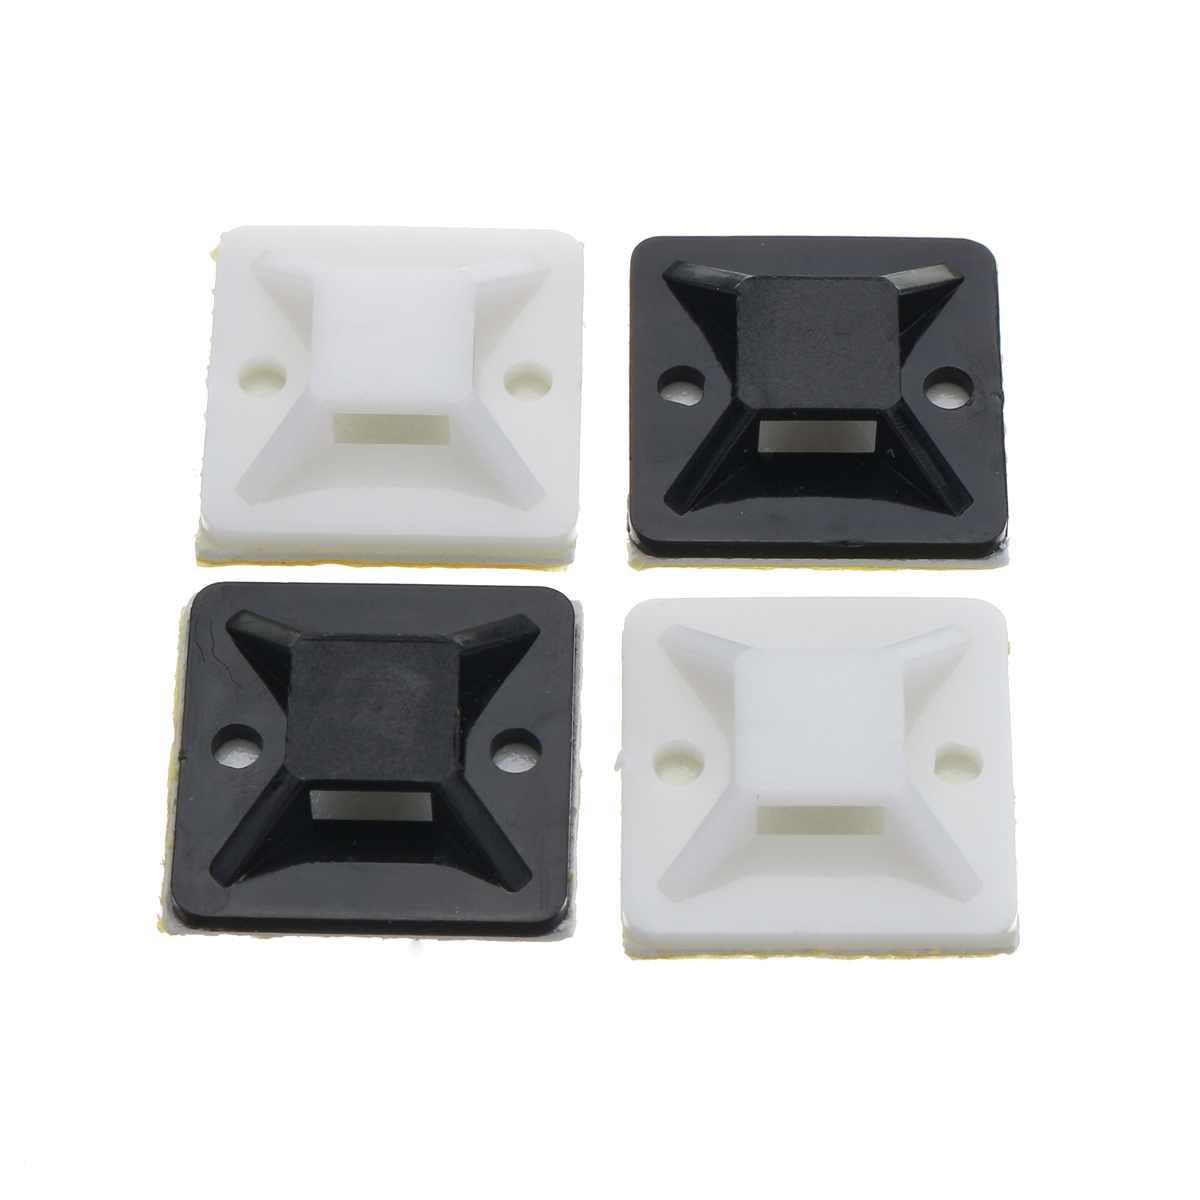 100Pcs/Pack 20x20mm Self-Adhesive Zip Tie Cable Wire Mounts Clamps Wall Holder